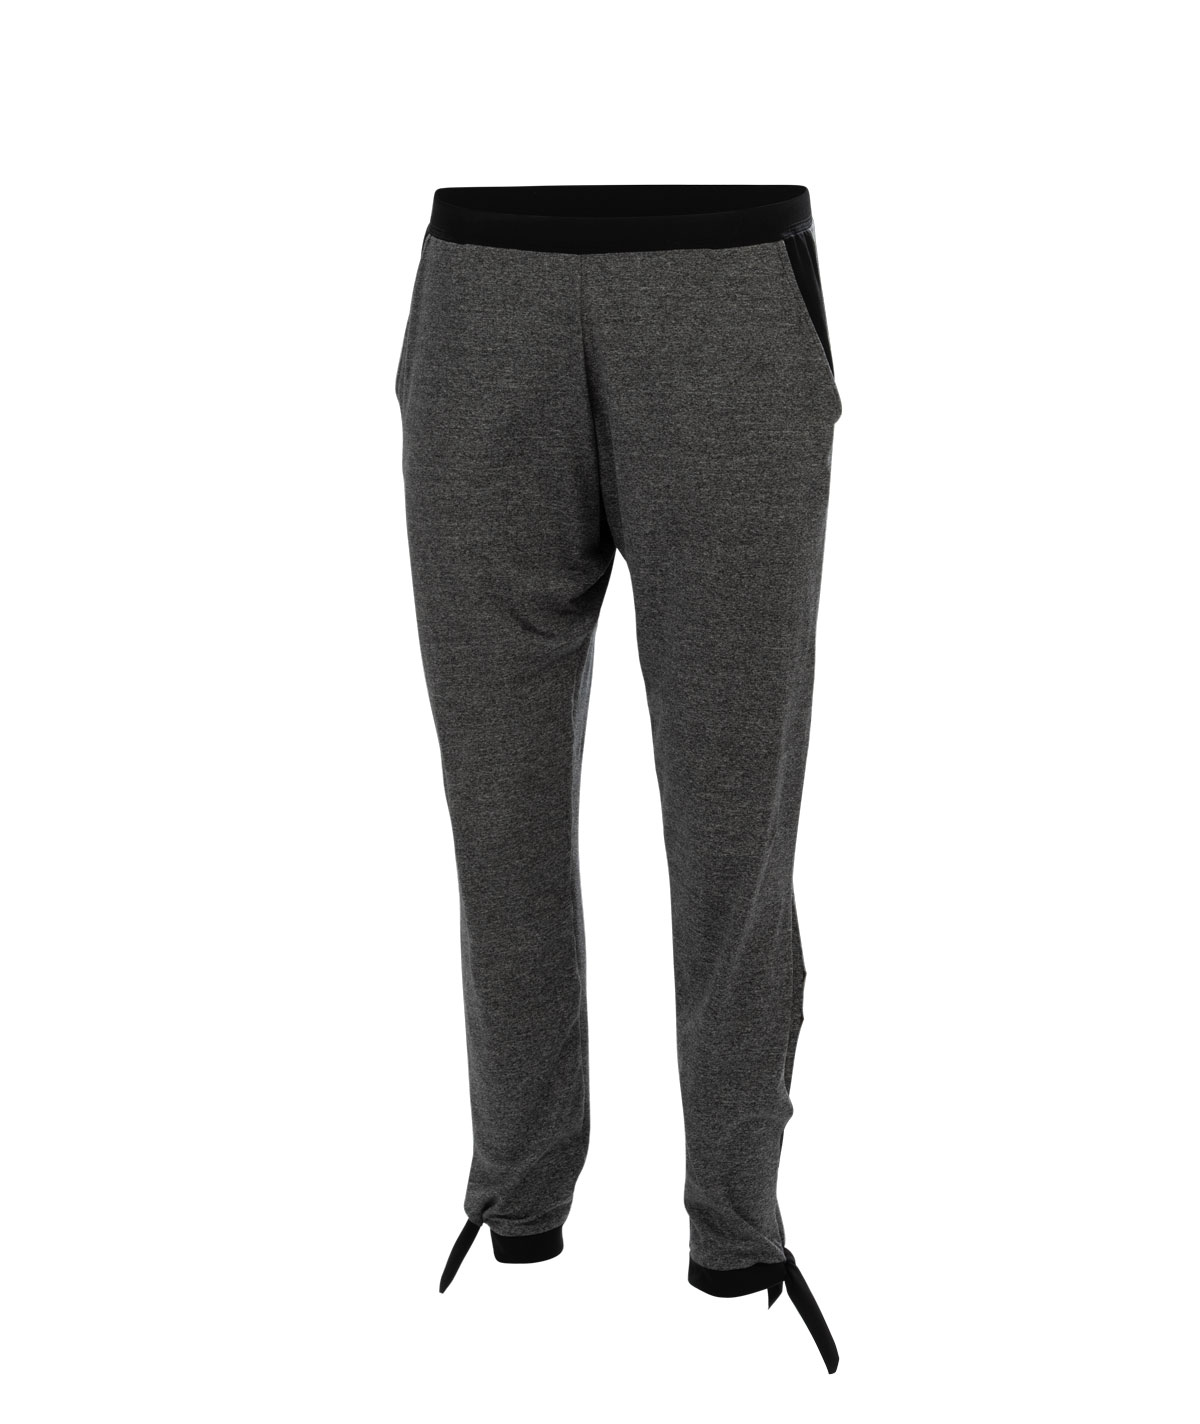 GK All Star Flow Tie Pant